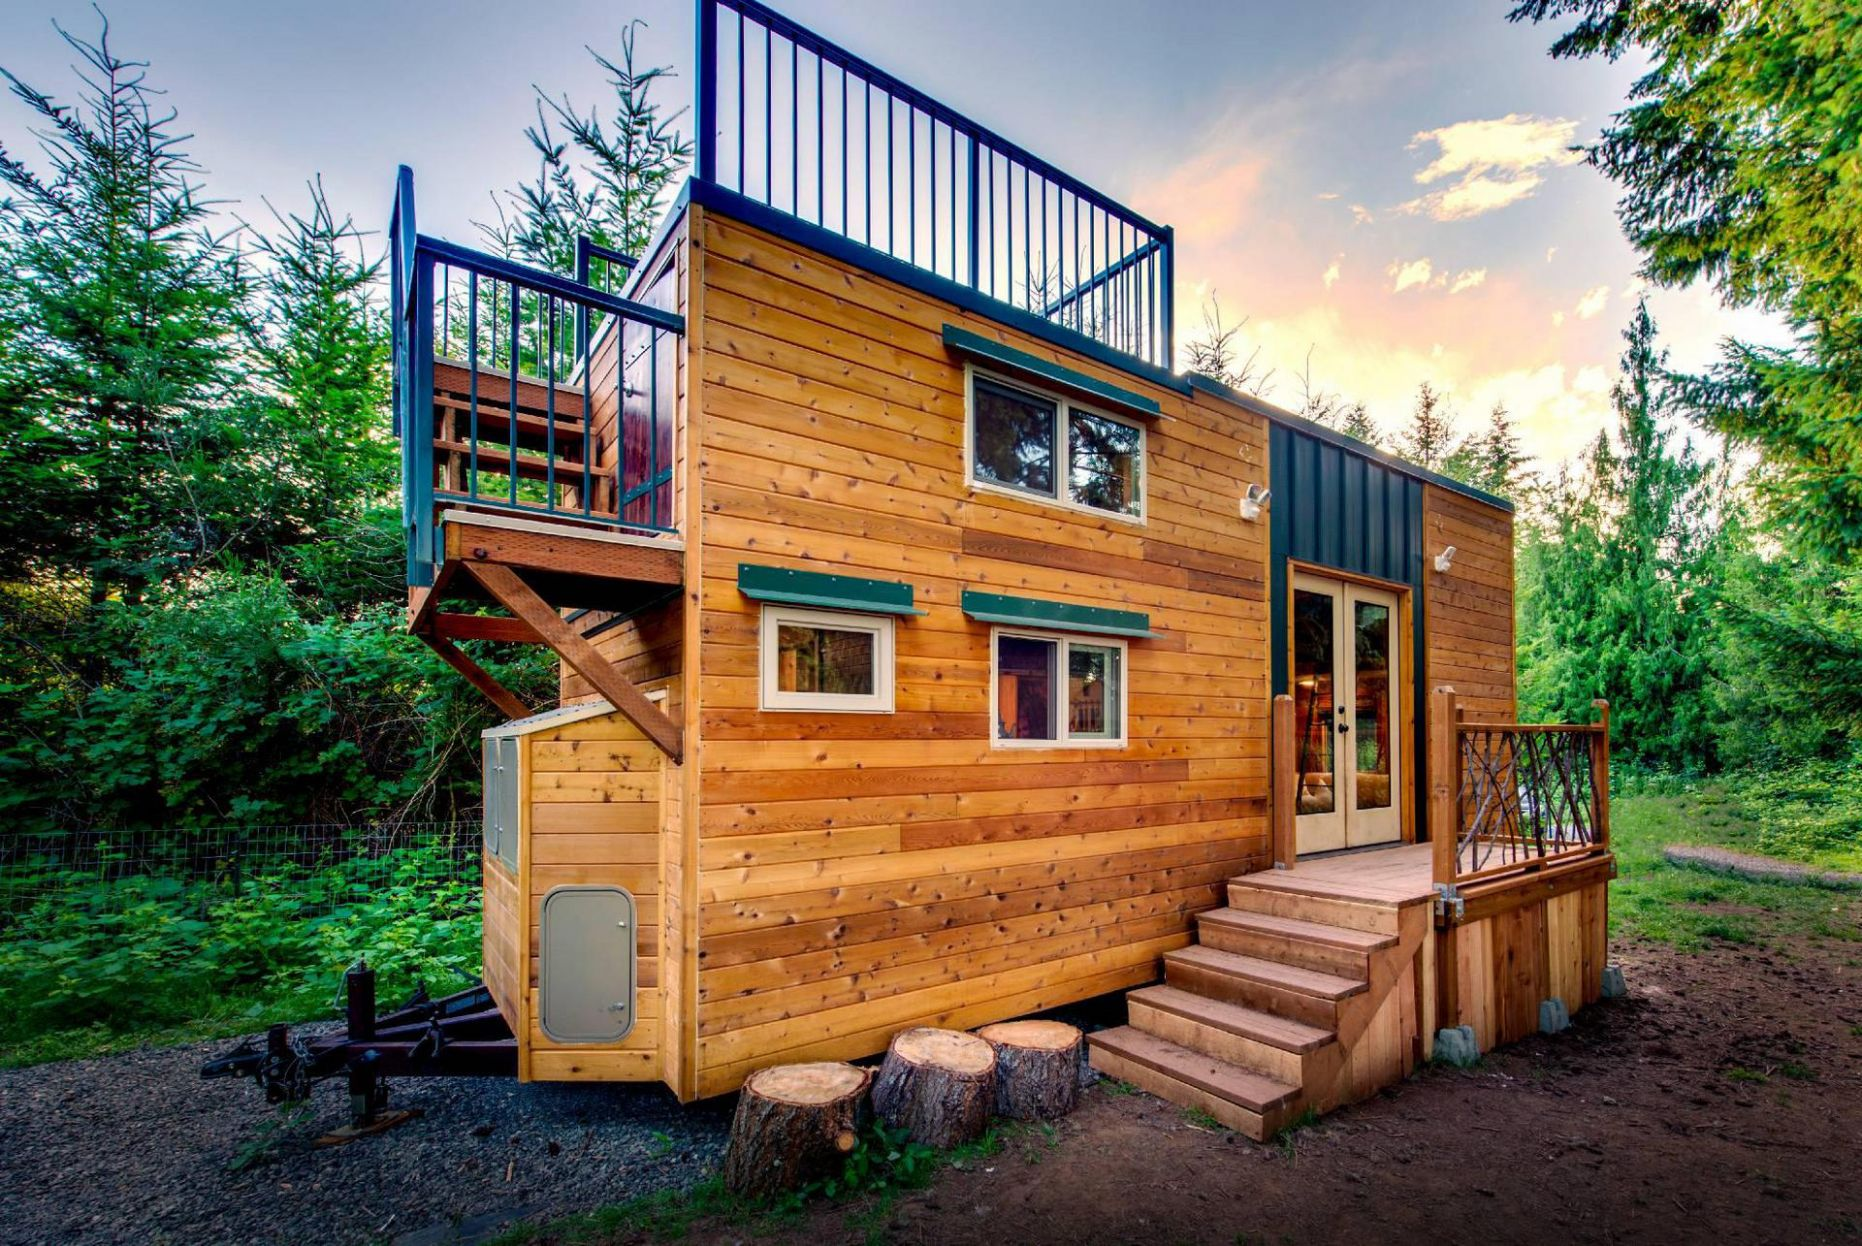 Tiny House Builders in Washington - tiny house washington